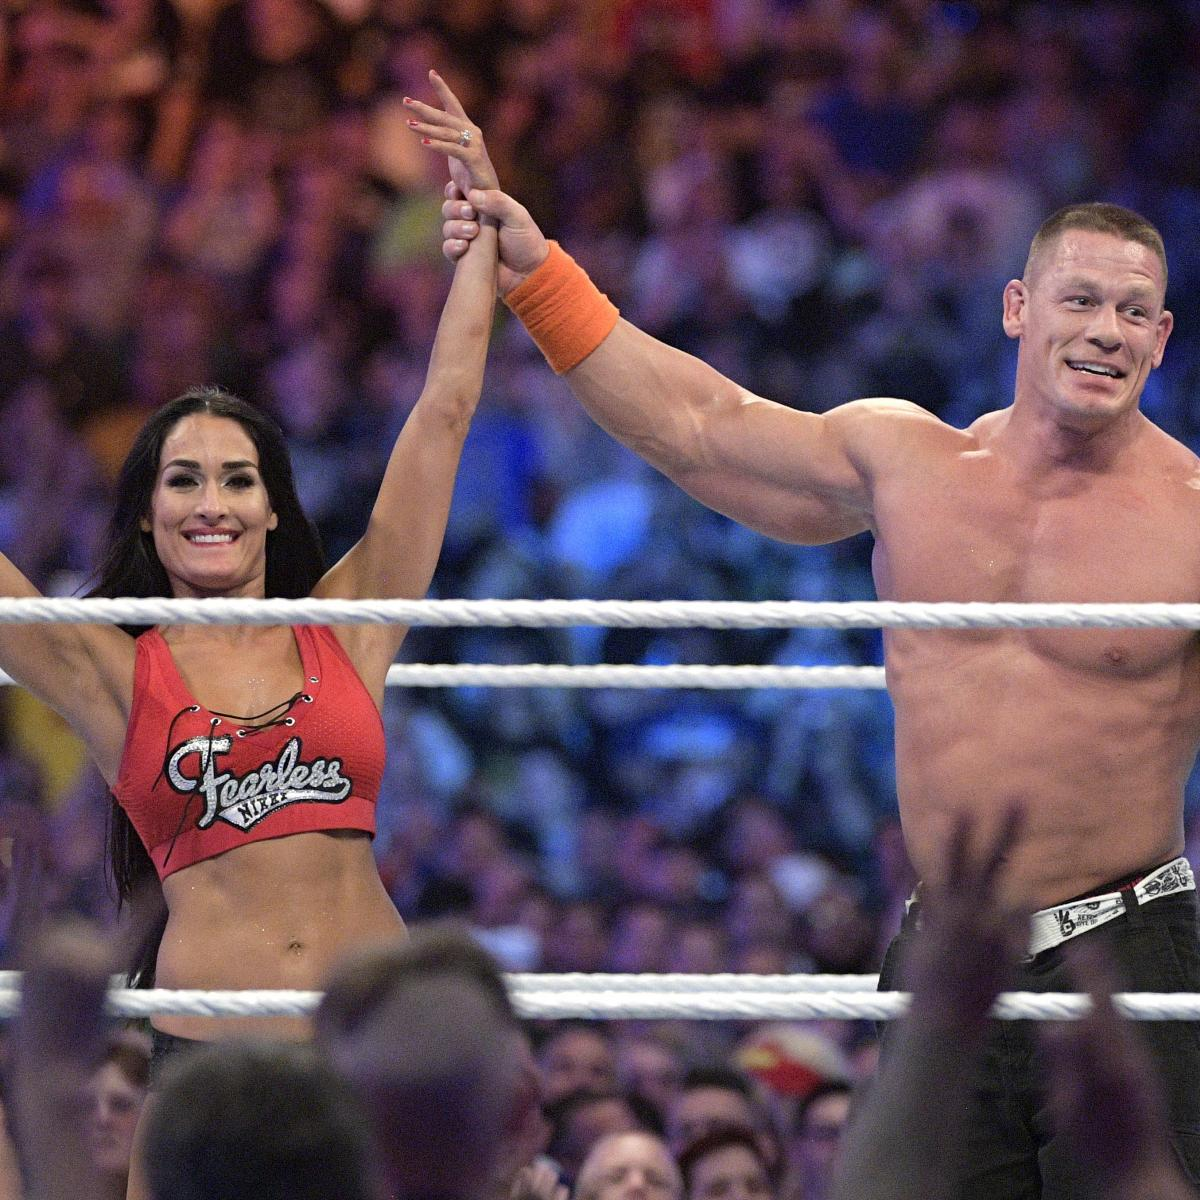 John Cena's Most Memorable Matches, Moments In